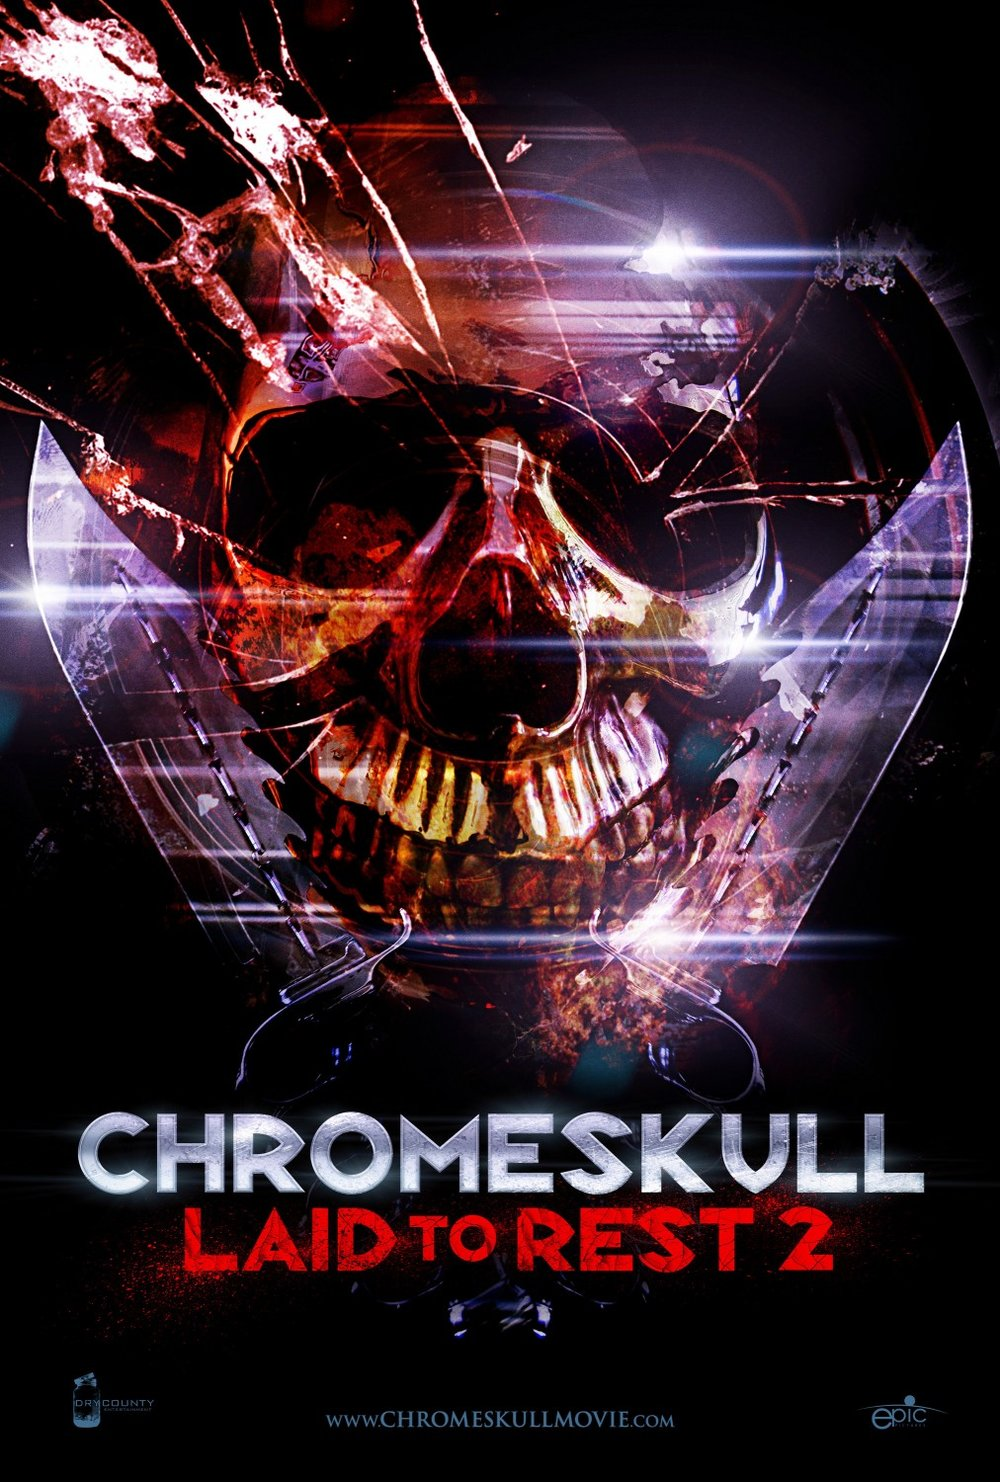 ChromeSkull_Laid_to_Rest_2.jpg